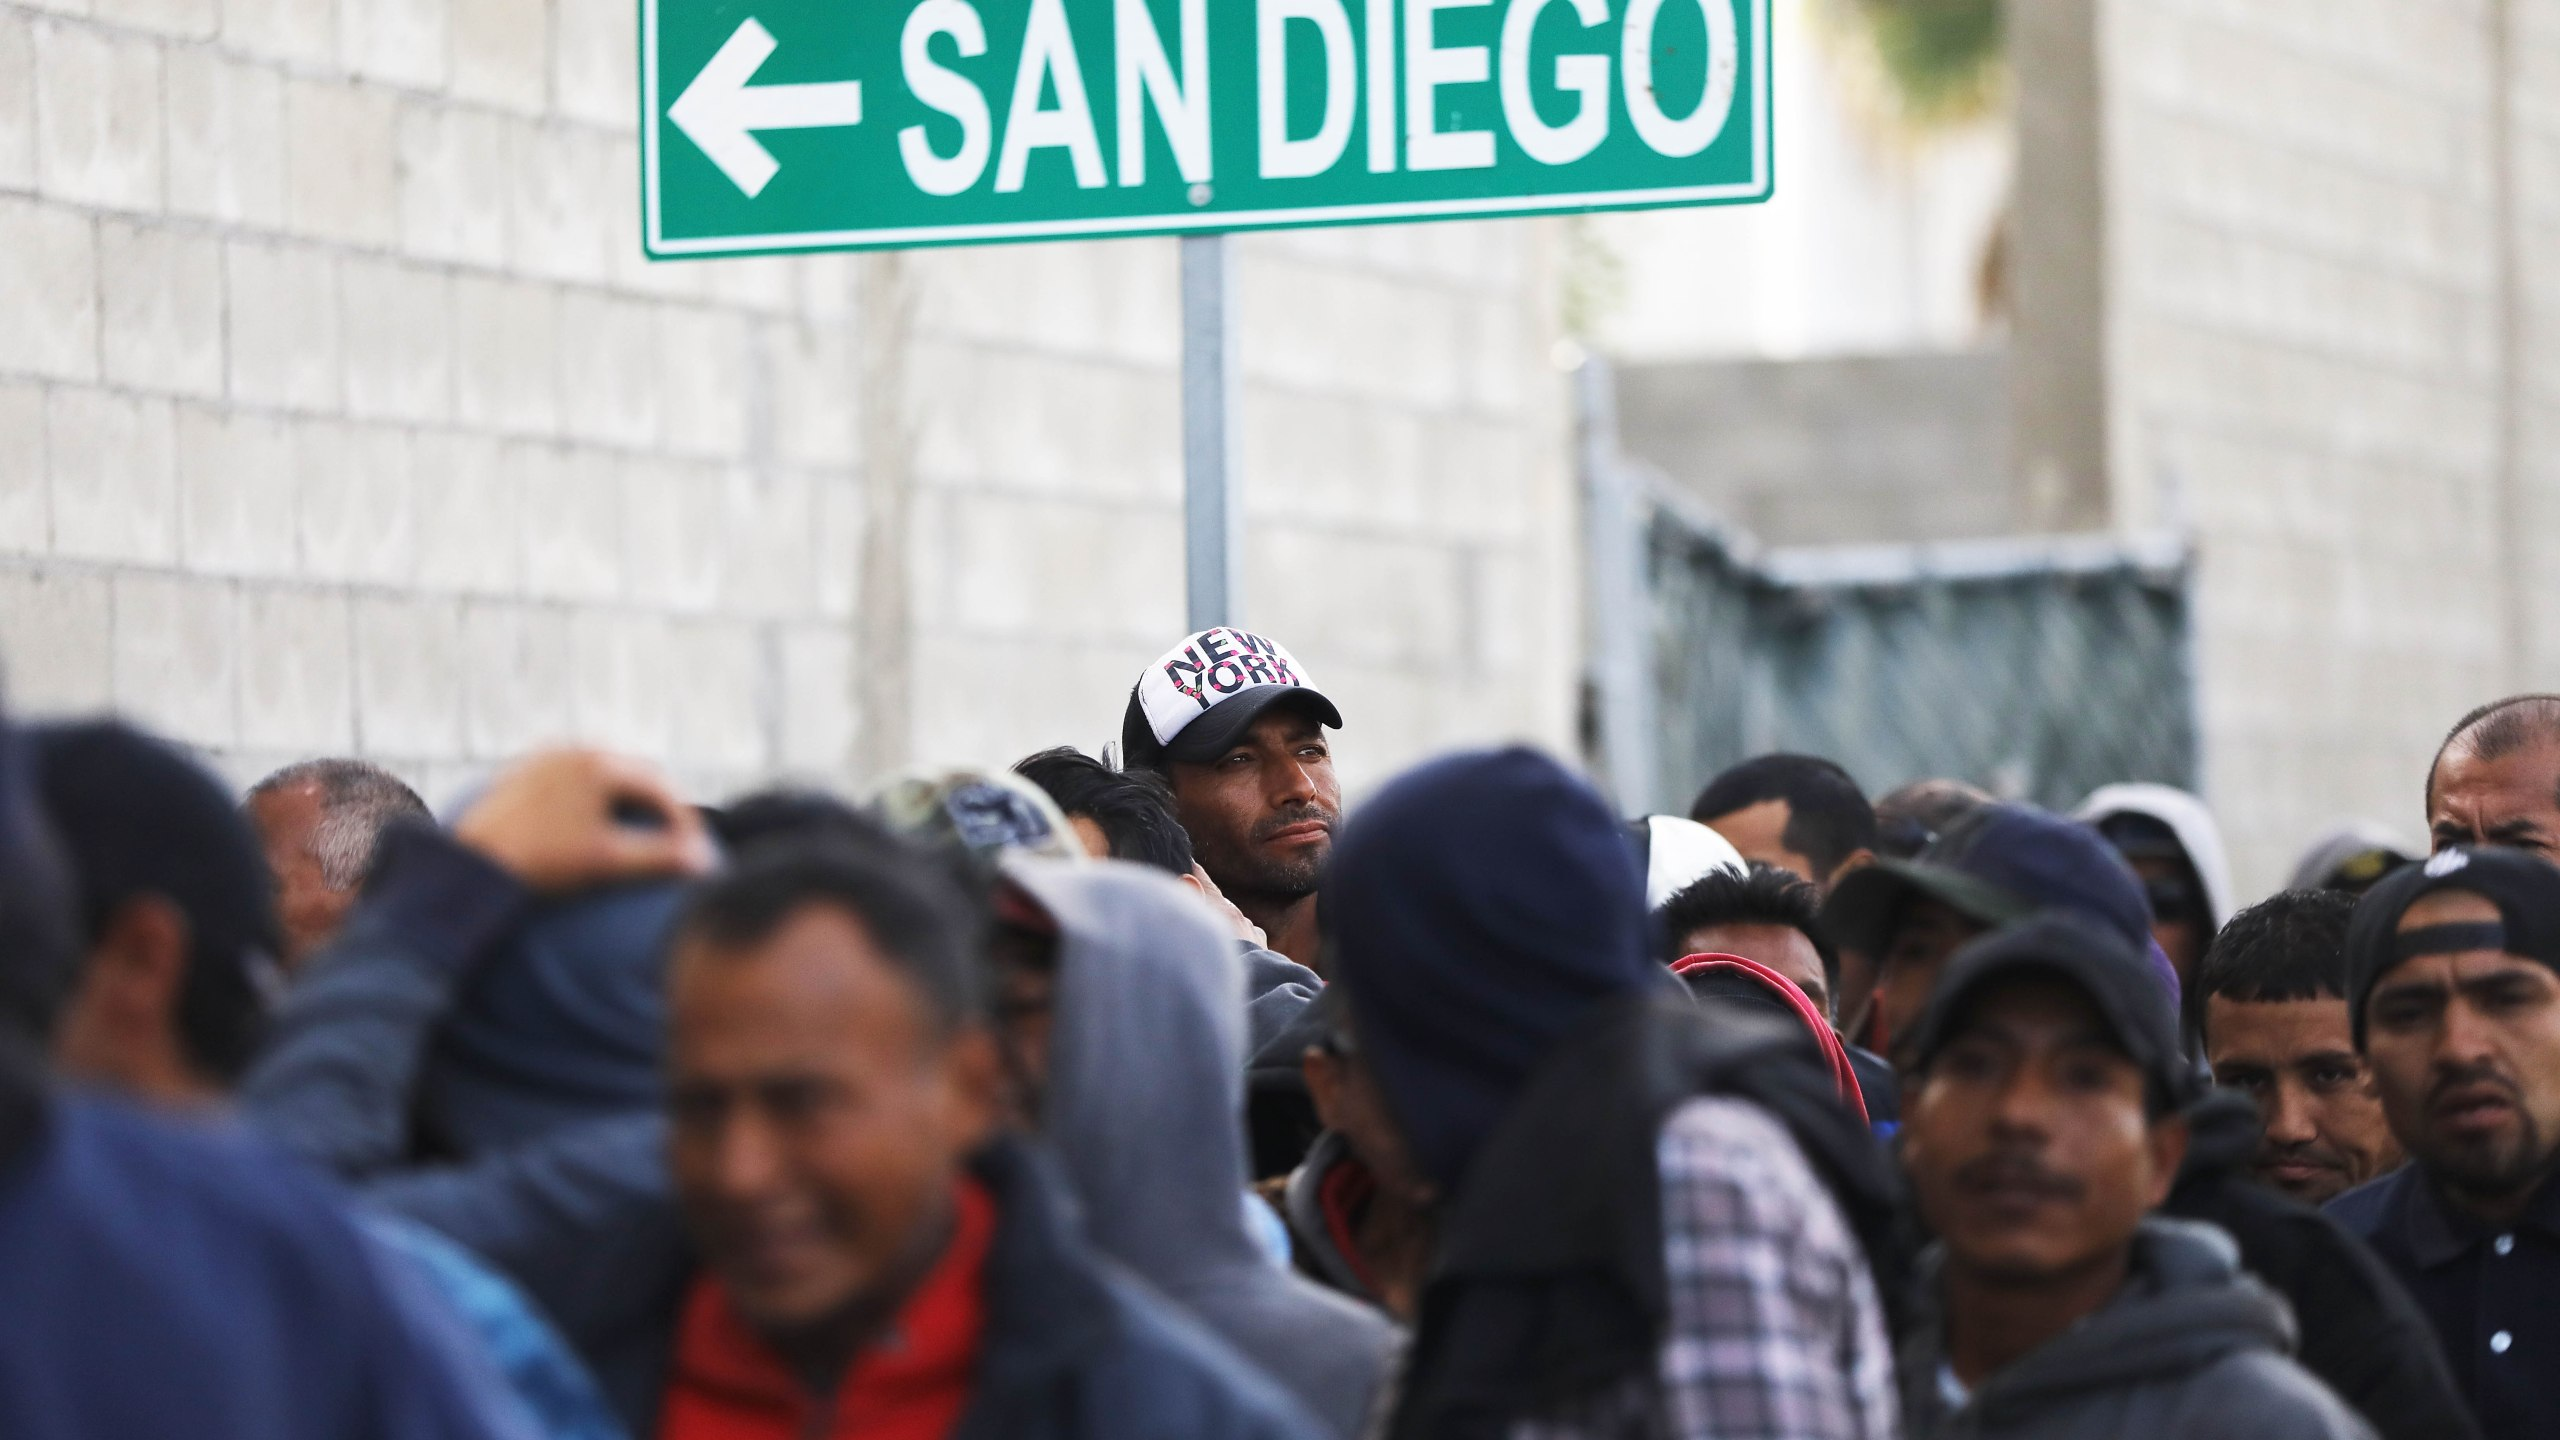 Migrants line up for free breakfast at the Desayunador Salesiano Padre Chava shelter and soup kitchen in front of sign for San Diego on March 9, 2018 in Tijuana, Mexico. (Credit: Mario Tama/Getty Images)